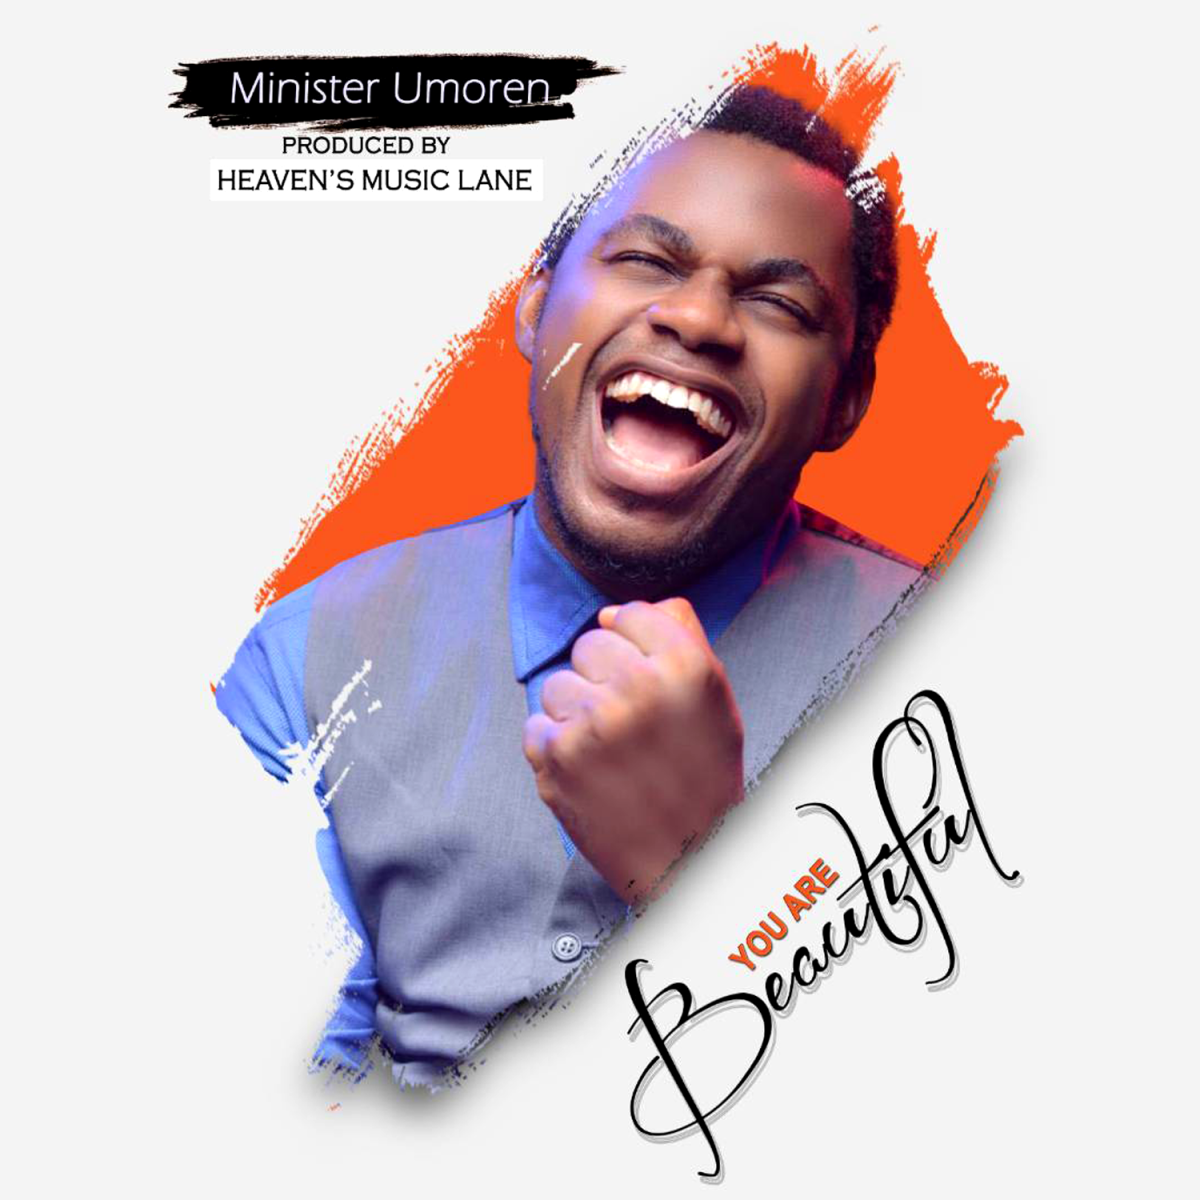 #Music : You are beautiful - Minister Umoren || @MinisterUmoren